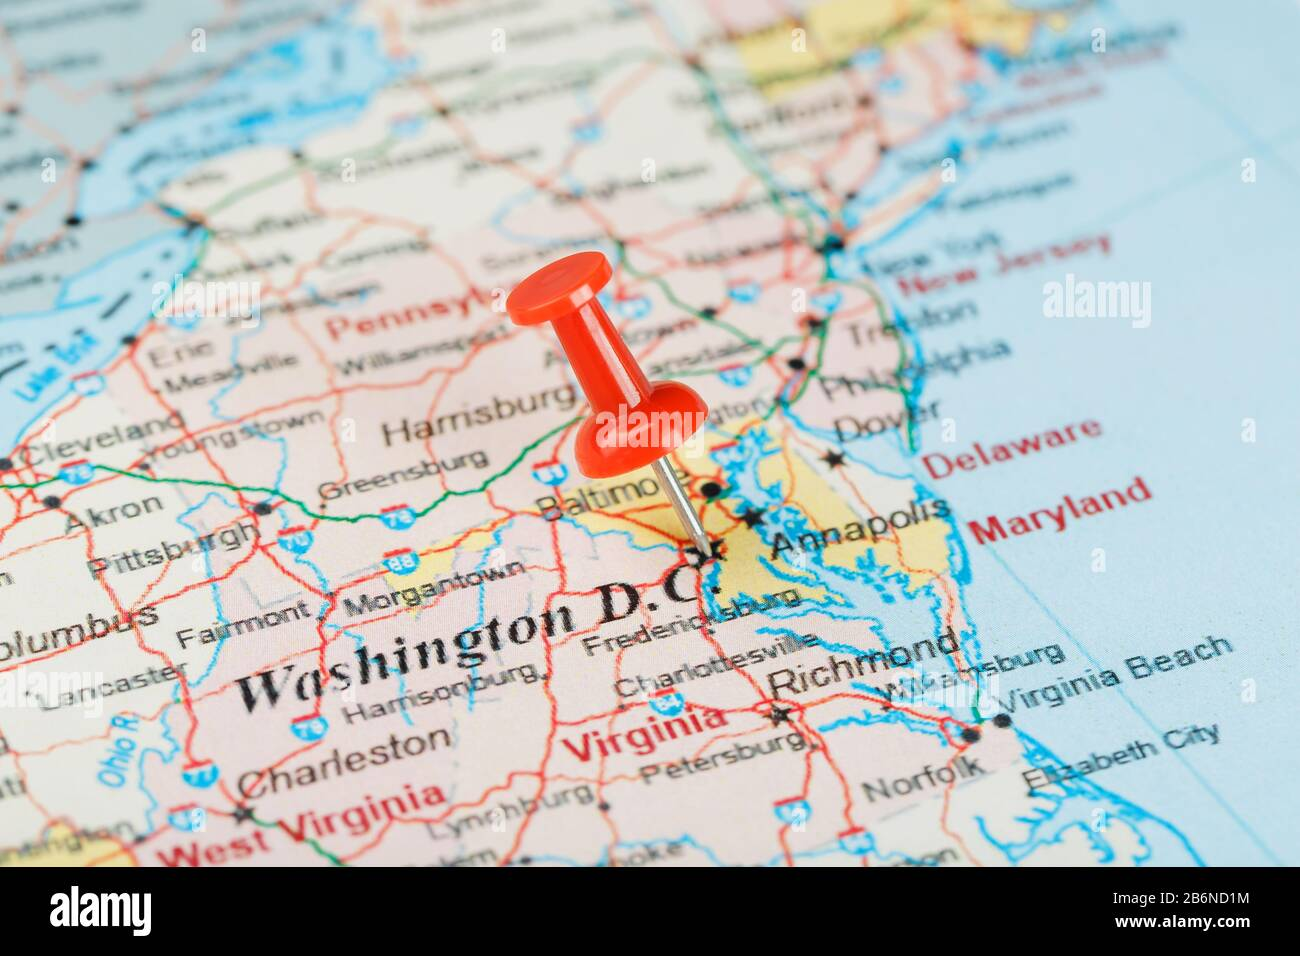 Sometimes called a legend, a map key is a table that explains what the symbols on a map mean. Red Clerical Needle On The Map Of Usa South Washington Dc And The Capital Of Richmond Close Up Map Of Dc With Red Tack Map Of United States Usa Stock Photo